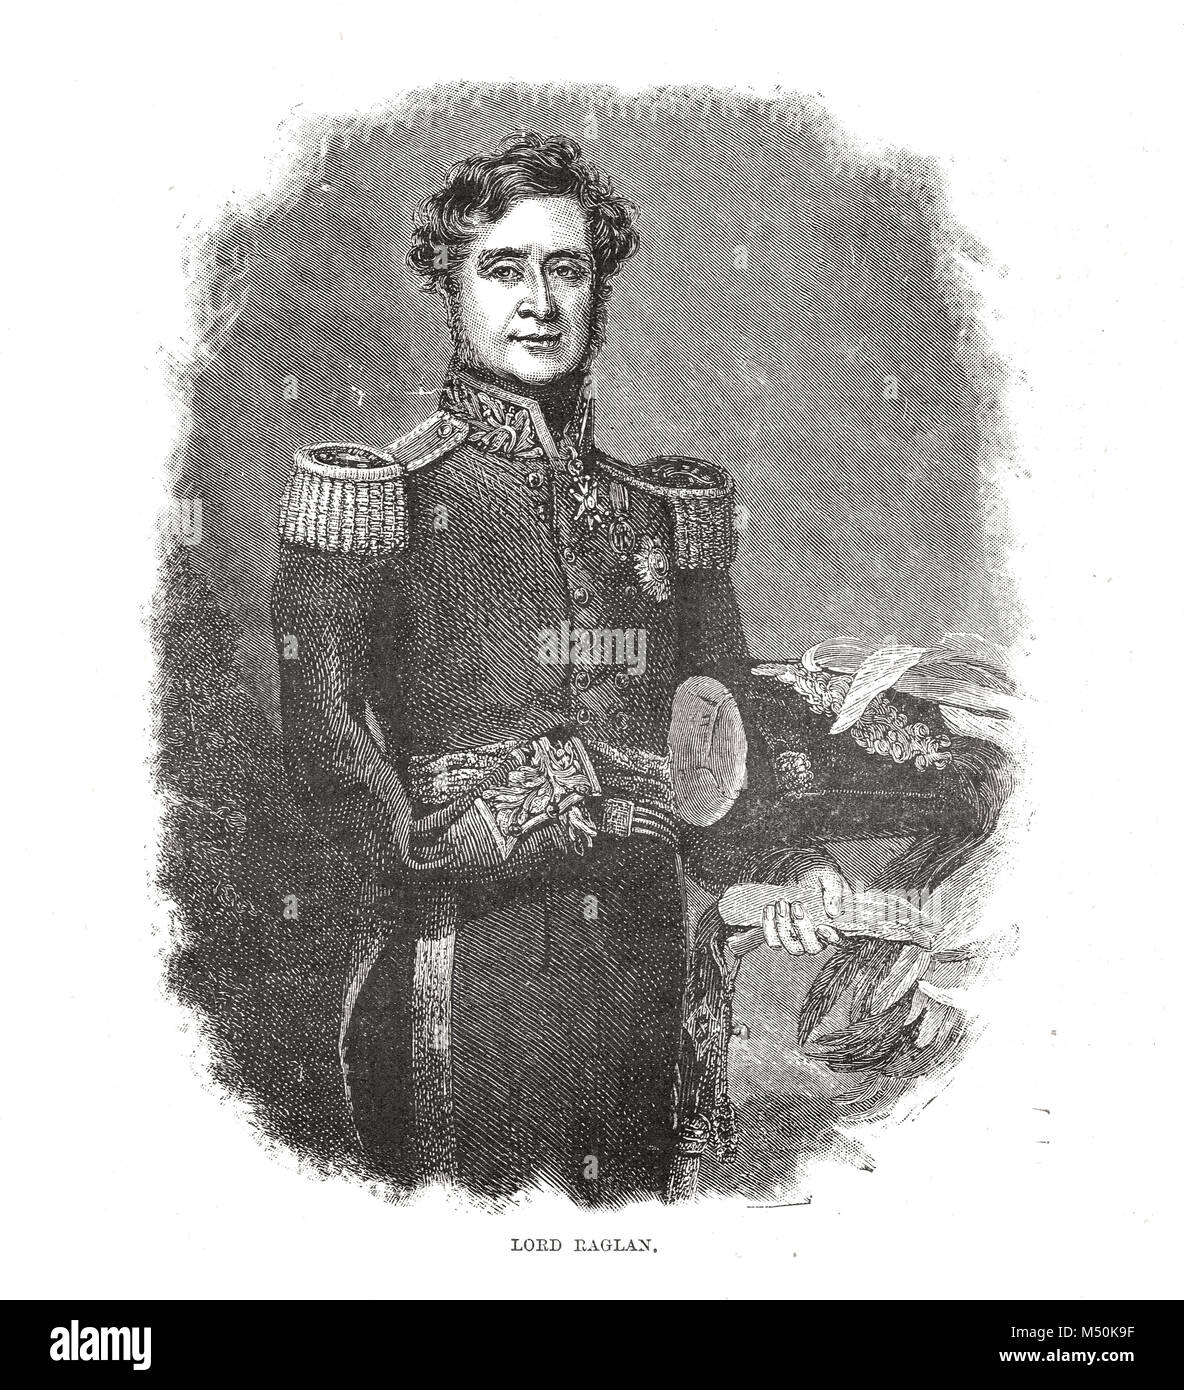 Field Marshal FitzRoy Somerset, 1st Baron Raglan, 1854, commander of the British troops sent to the Crimea in 1854 - Stock Image